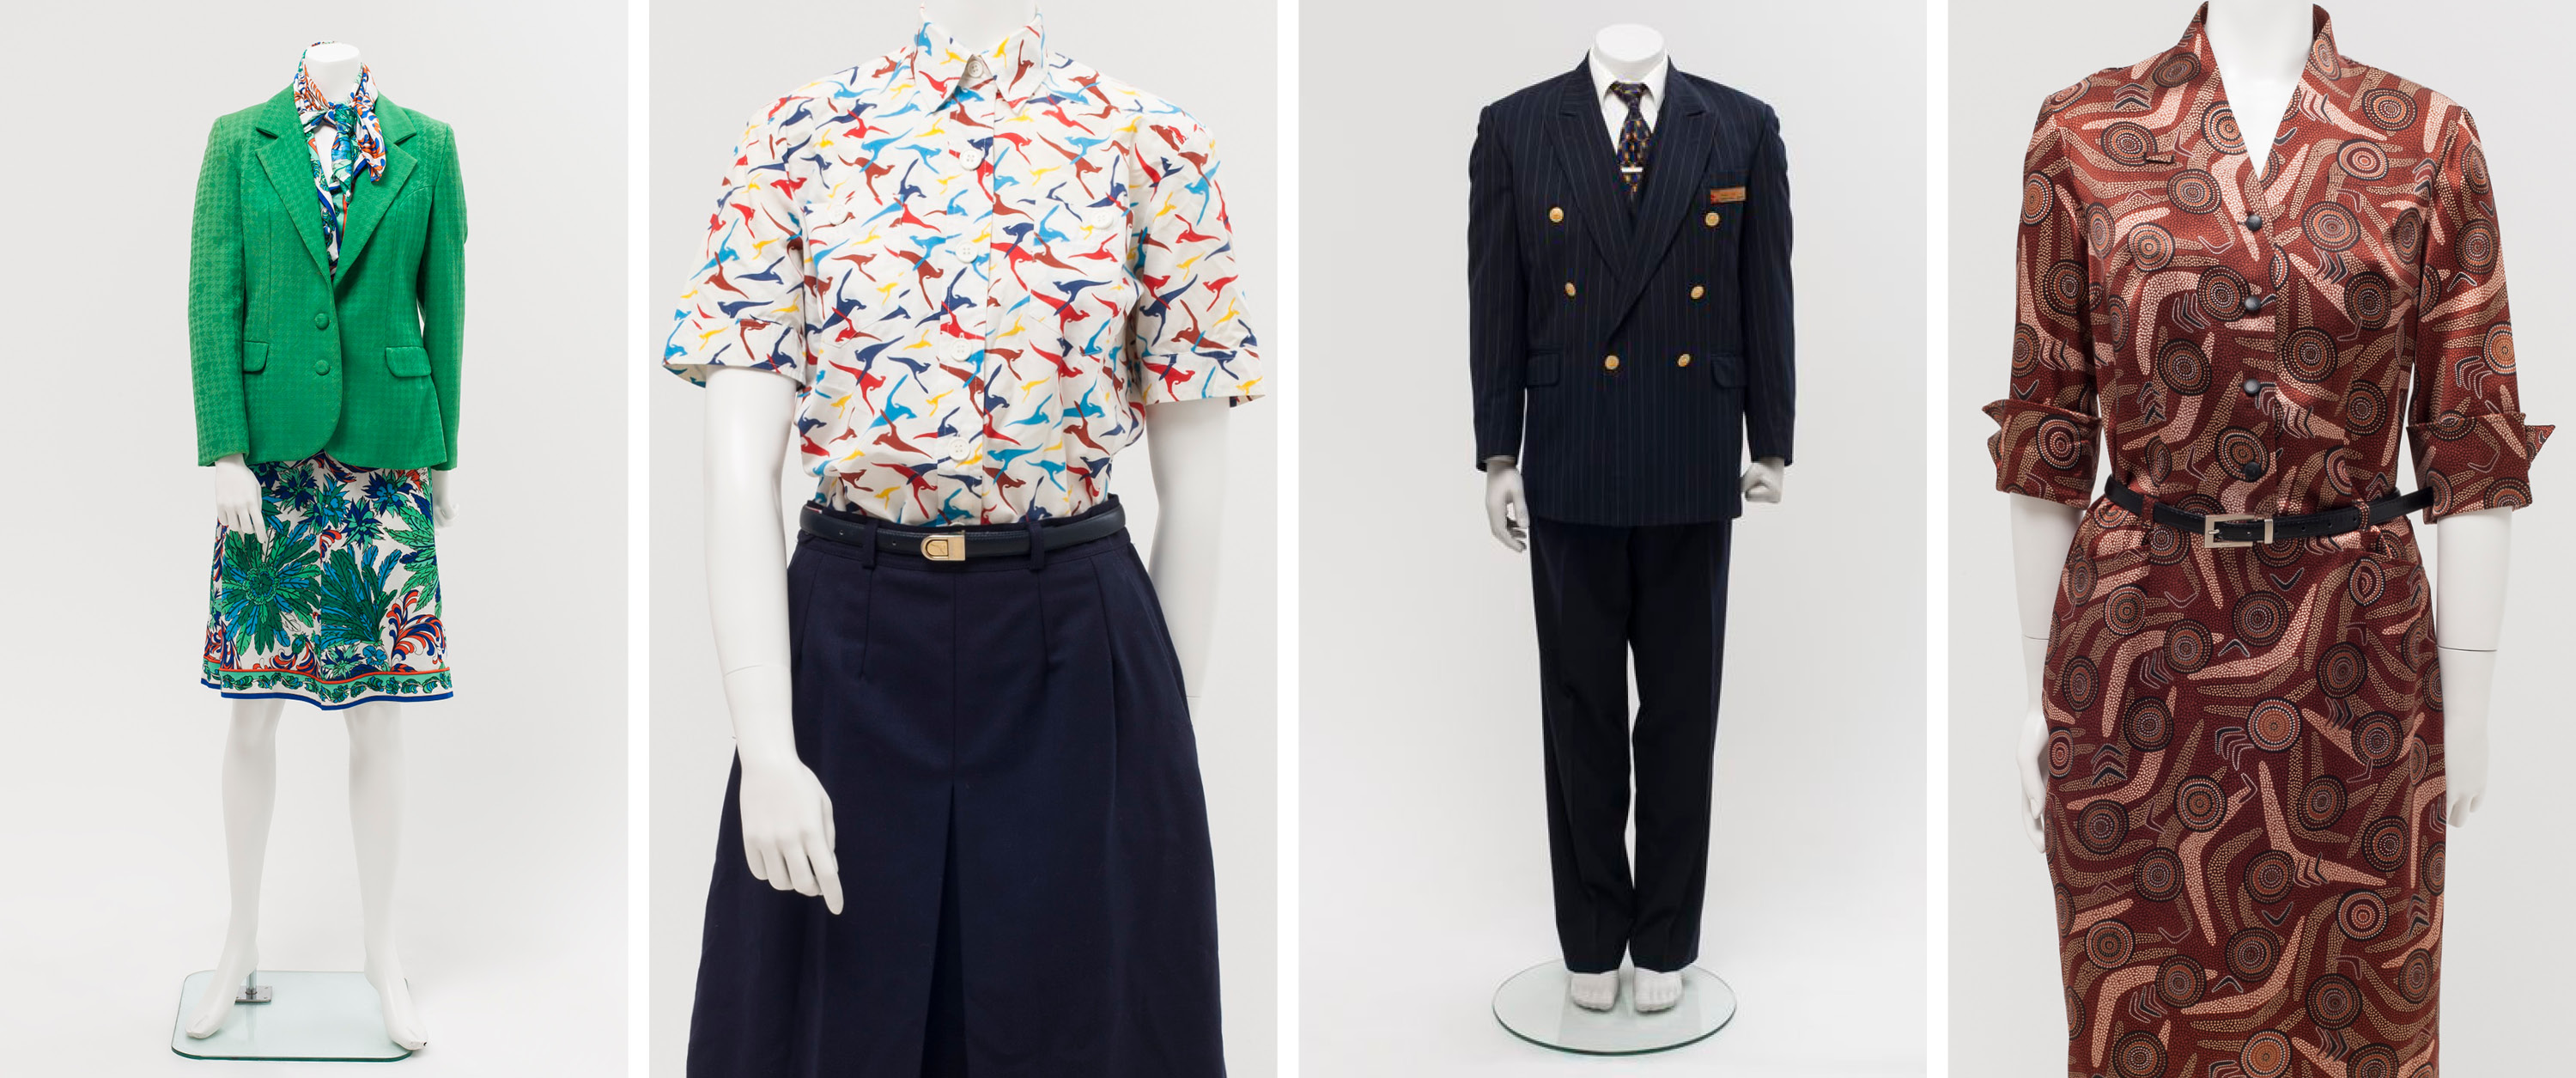 Four mannequins wearing QANTAS Staff Uniforms by Emilio Pucci 1974-87, Yves Saint Laurent 1987-94, George Gross and Harry Who 1994-2003, Peter Morrissey with Balarinji Design Agency 2003-16.